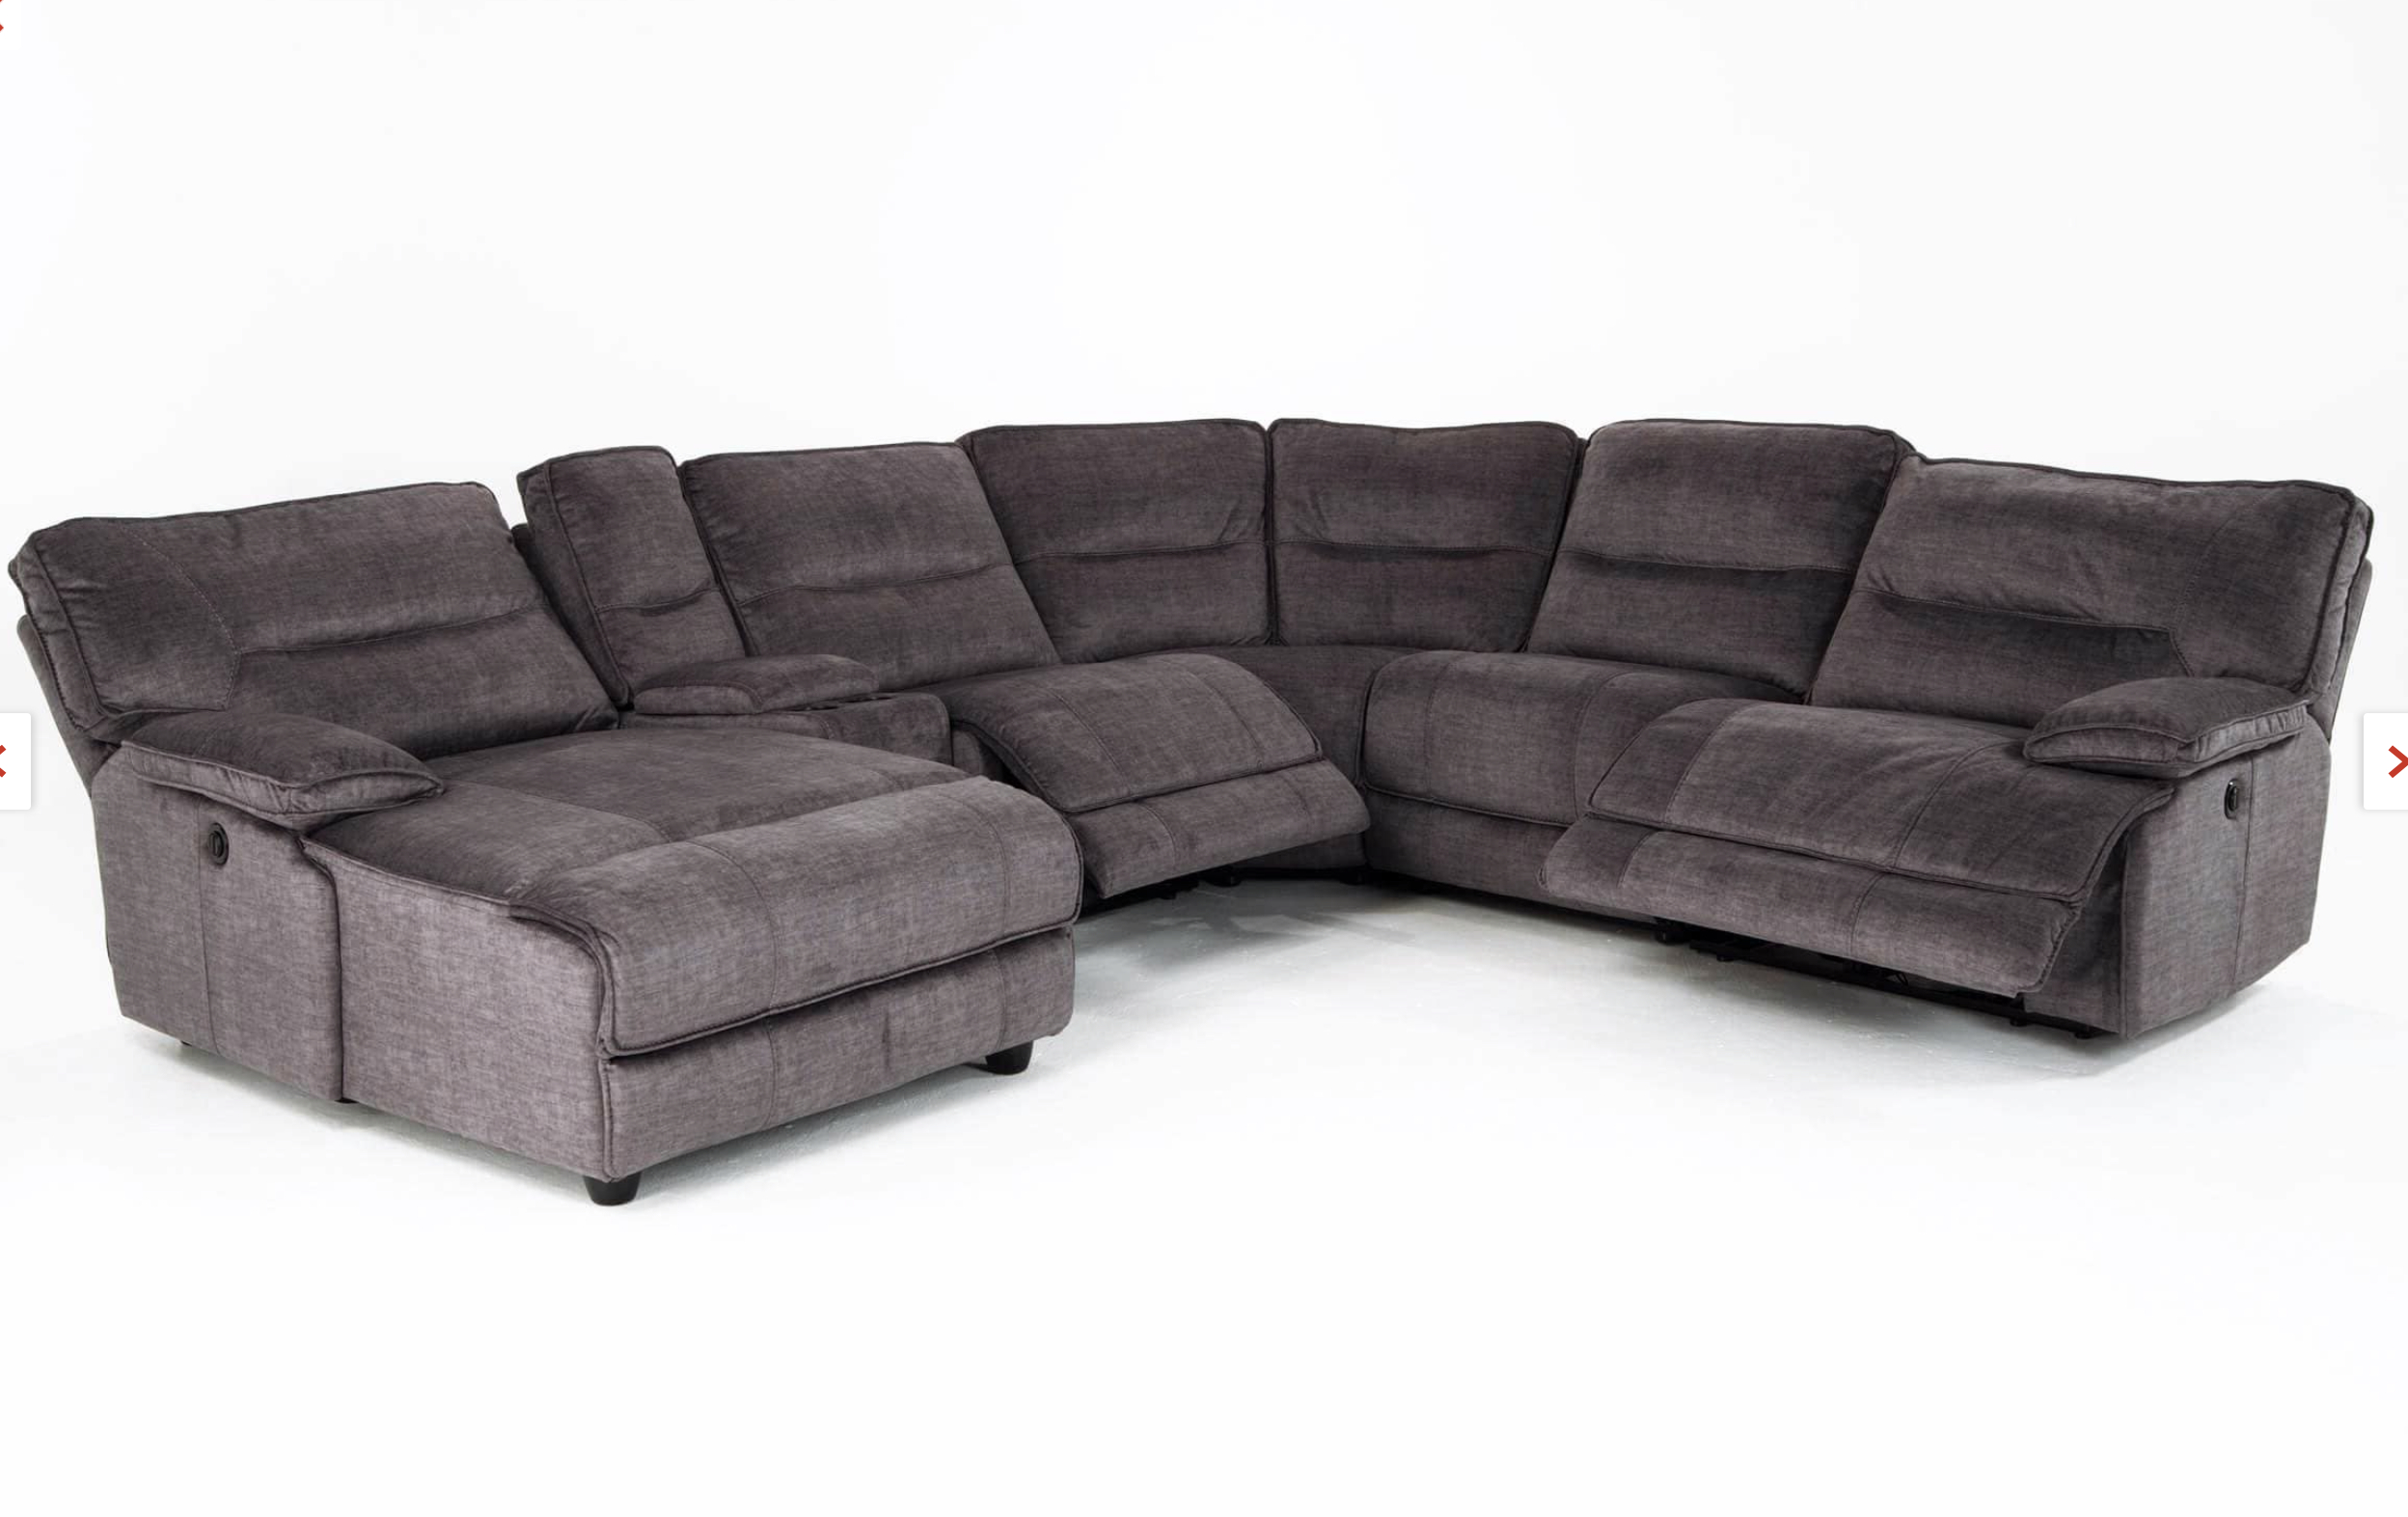 Pacifica Gray 6 Piece Power Reclining Left Arm Facing Pertaining To Latest Pacifica Gray Power Reclining Sofas (View 2 of 20)